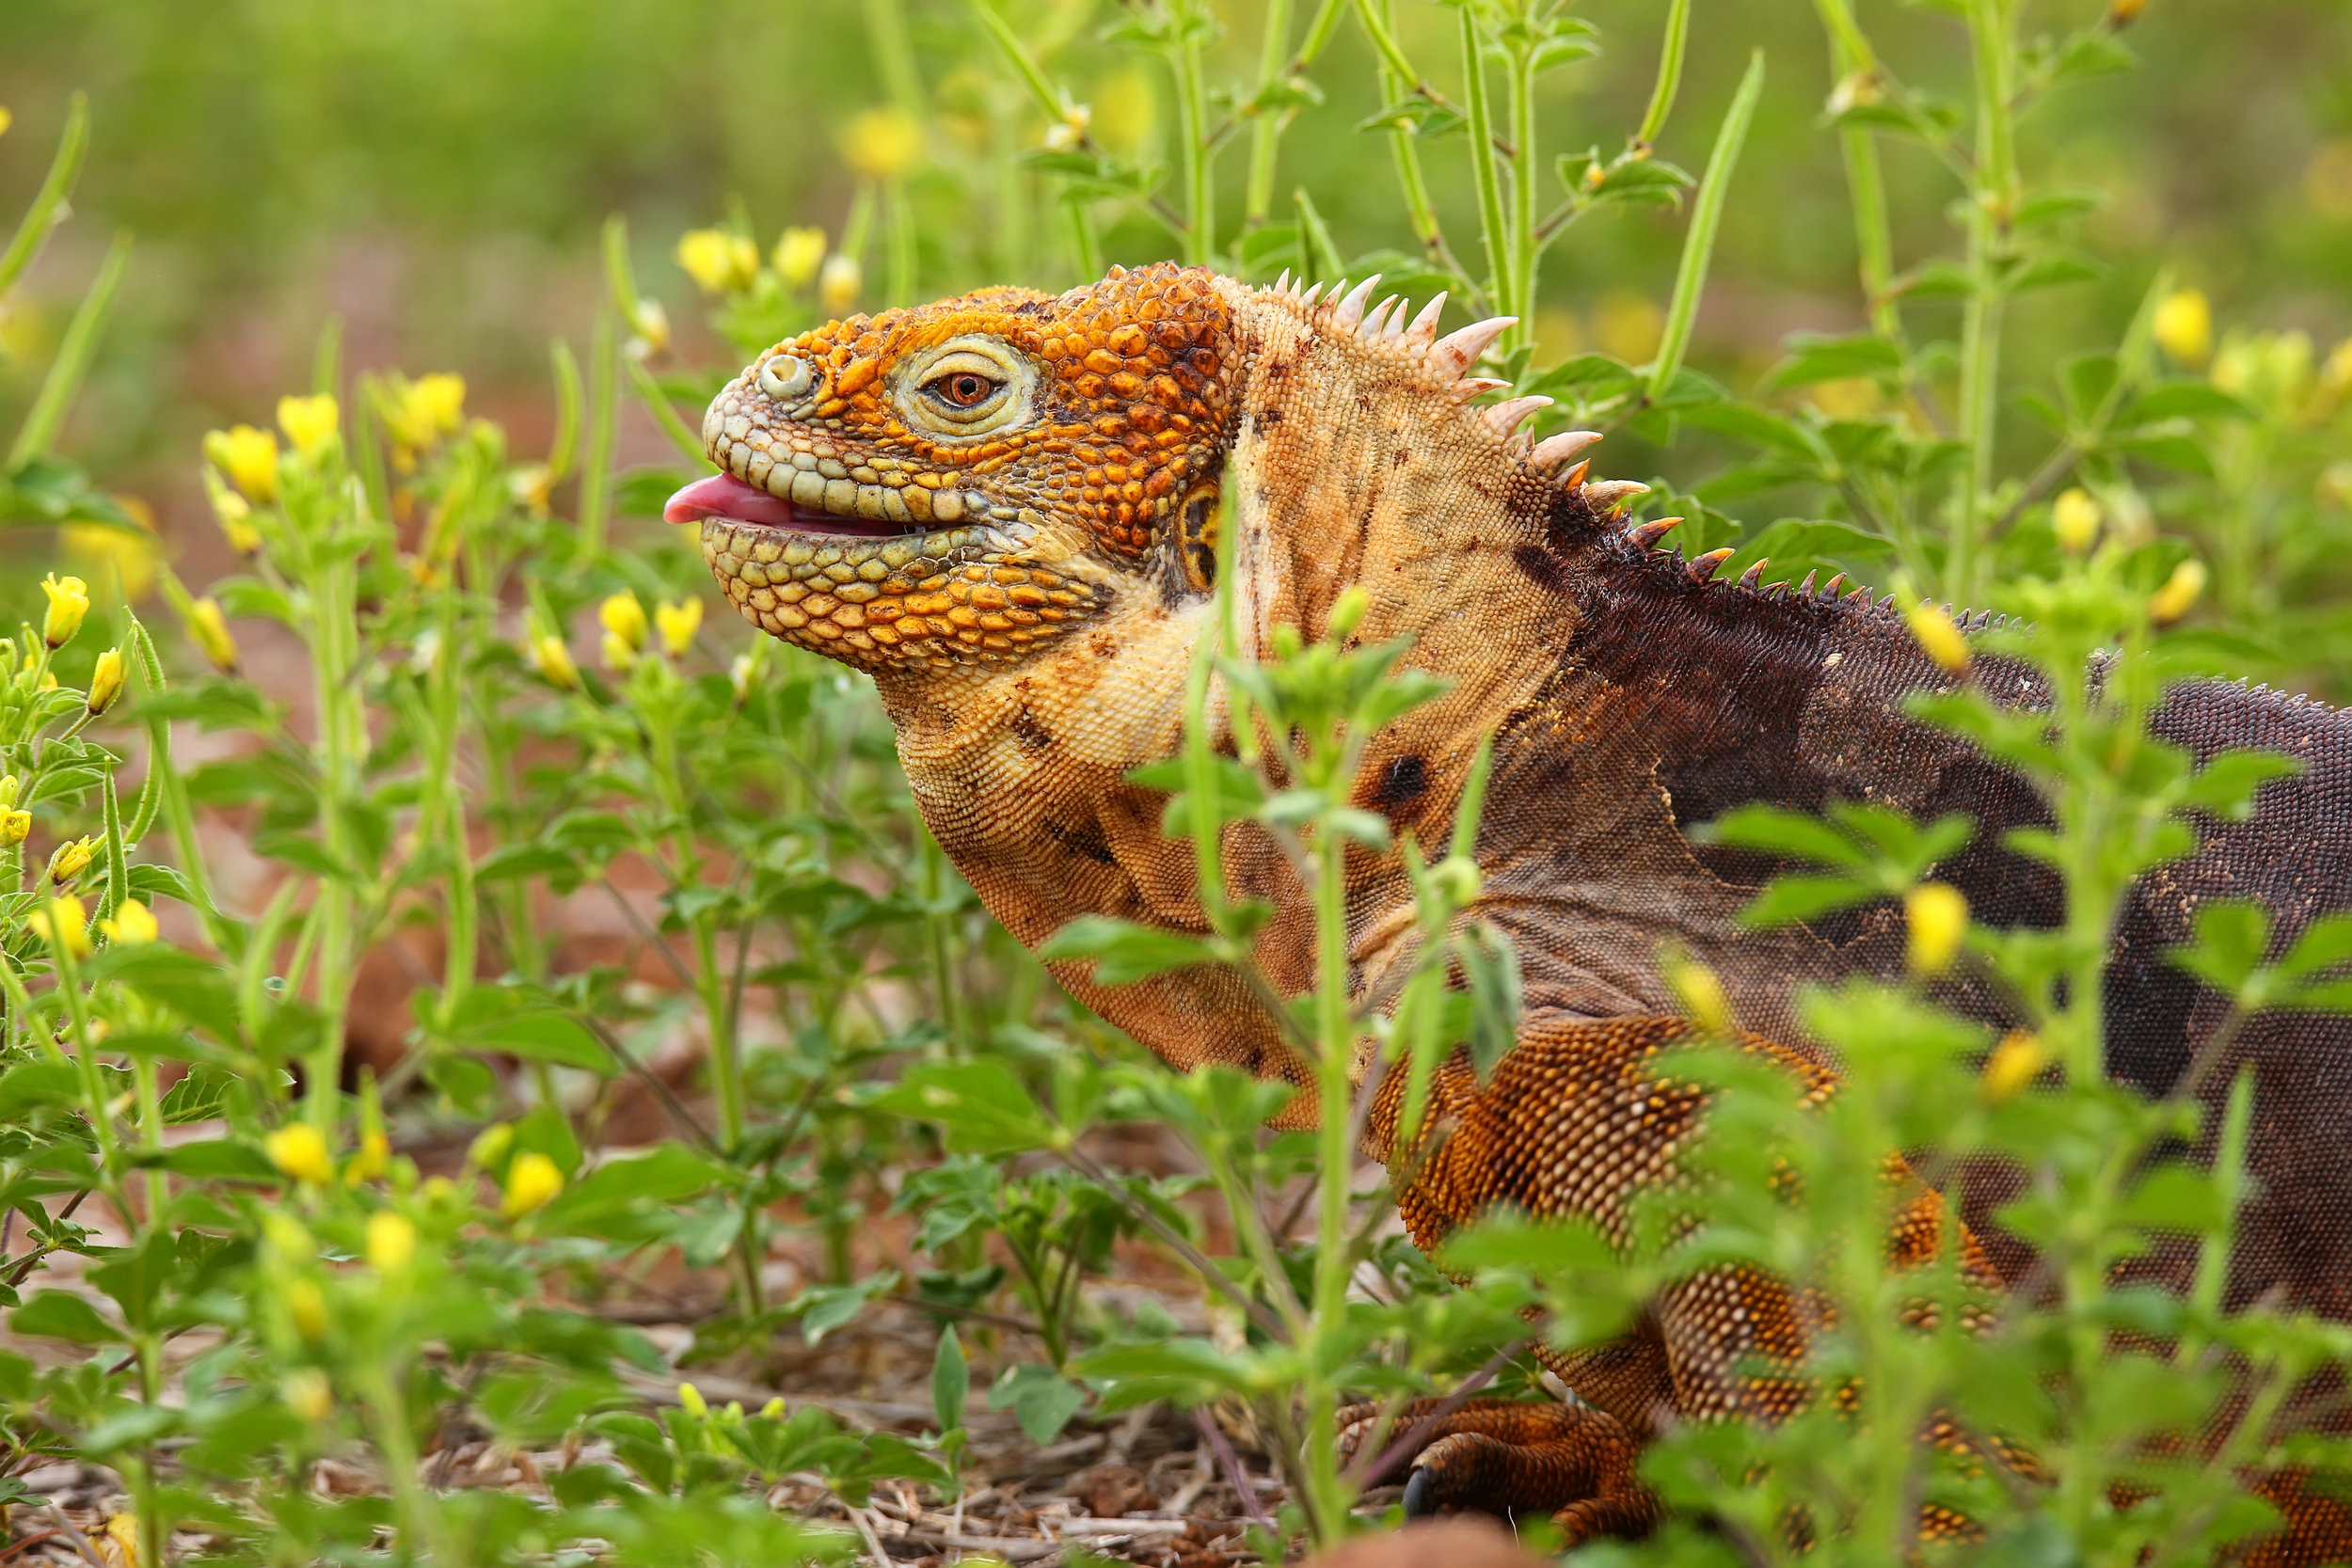 galapagos_NorthSeymour_bigstock-Galapagos-Land-Iguana-On-North-114035450.jpg